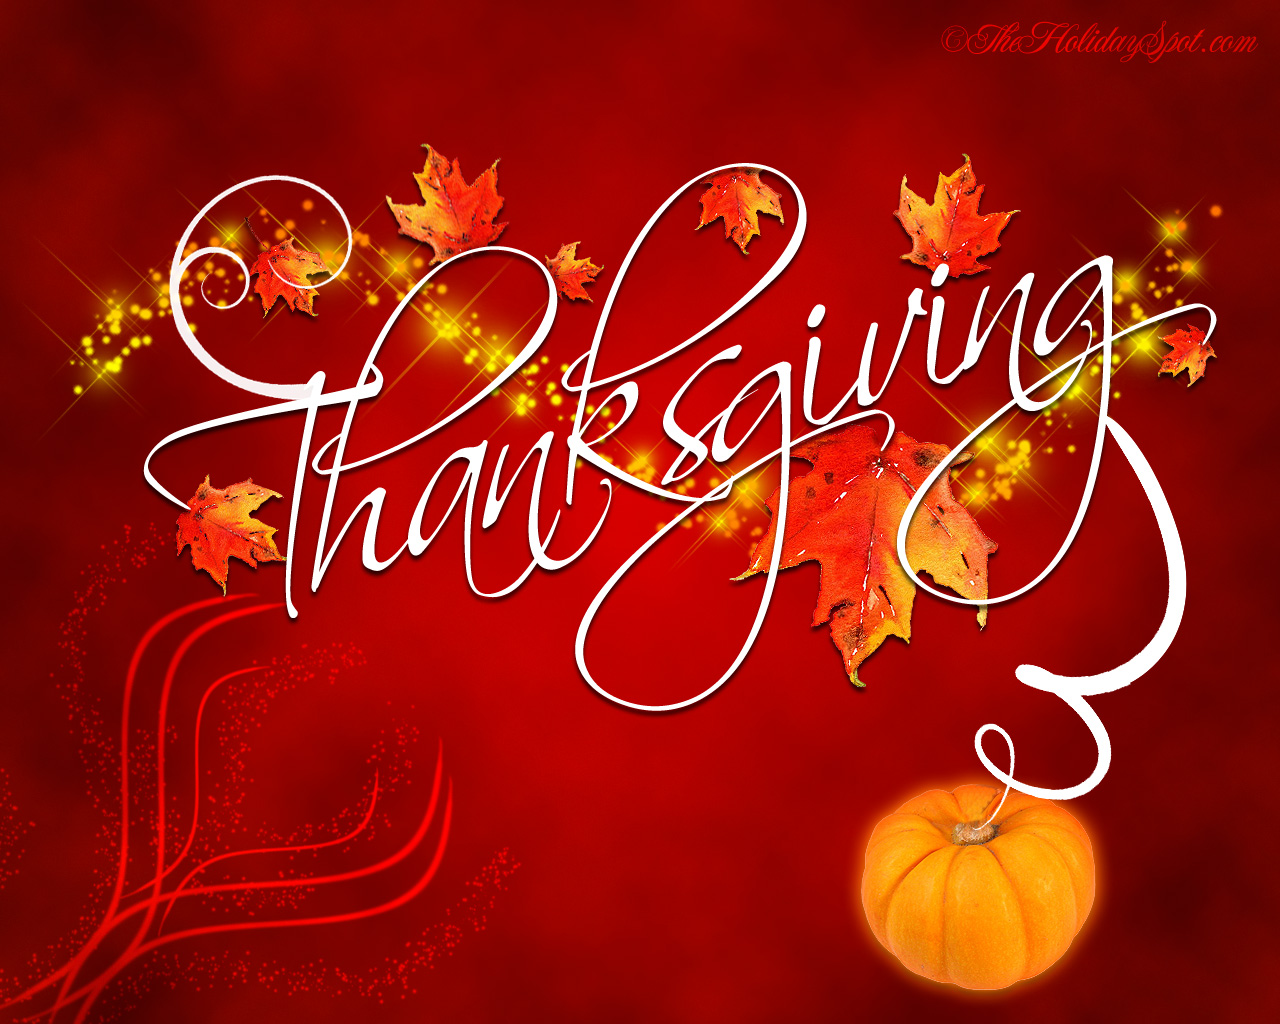 Free Thanksgiving Desktop Wallpapers Backgrounds Sf Wallpaper